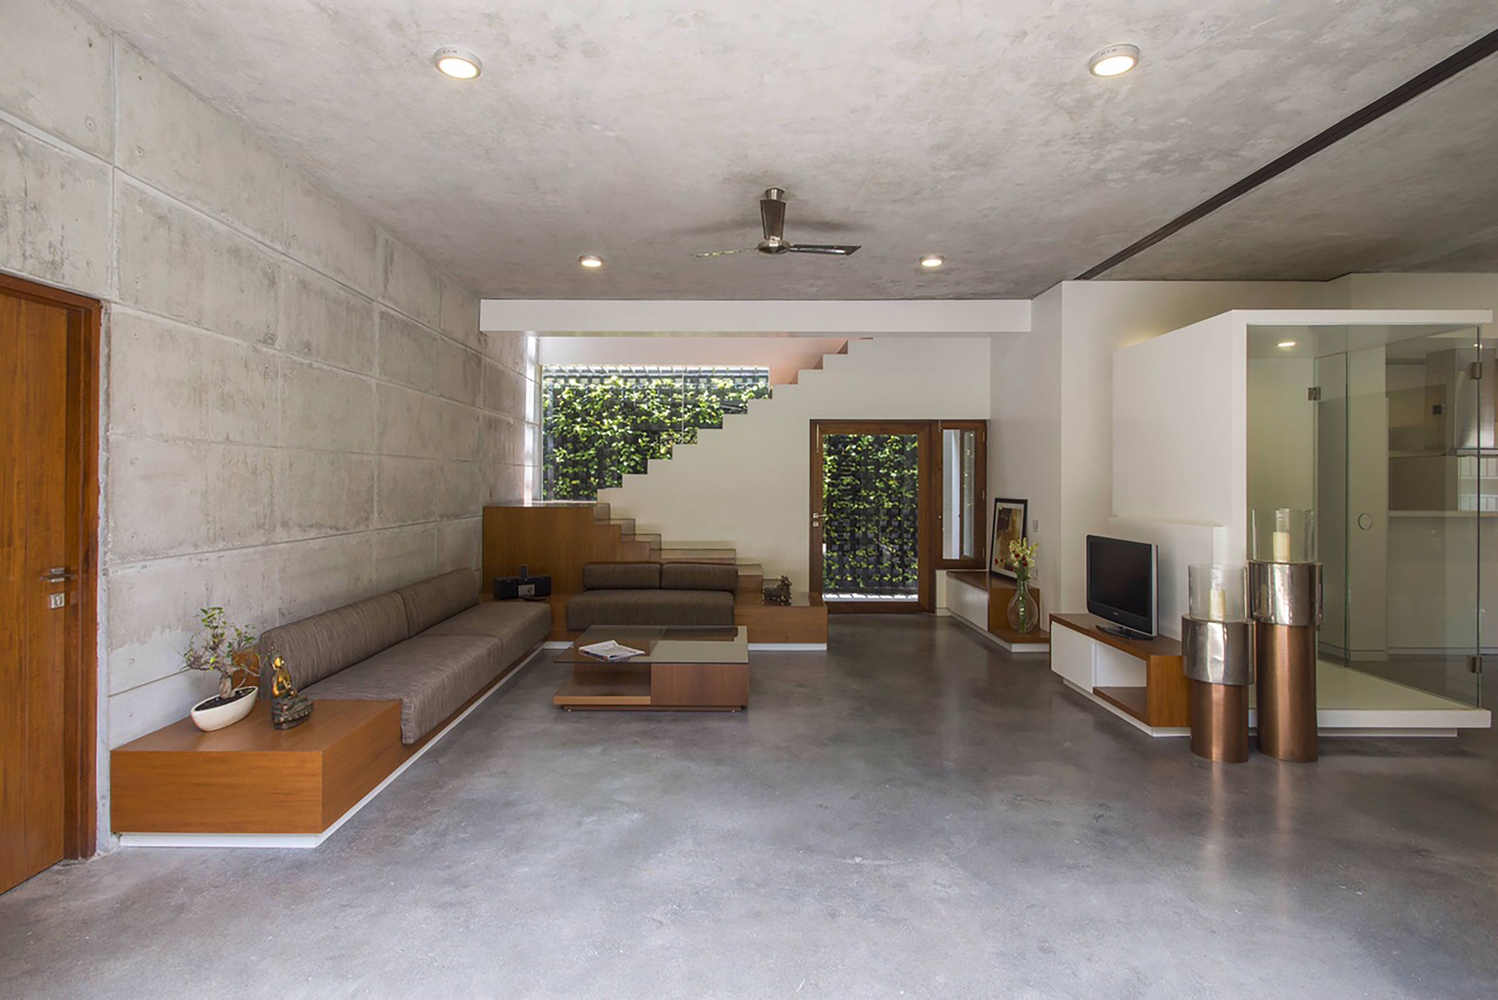 The Badri Residence  A Modern Indian Home by Architecture